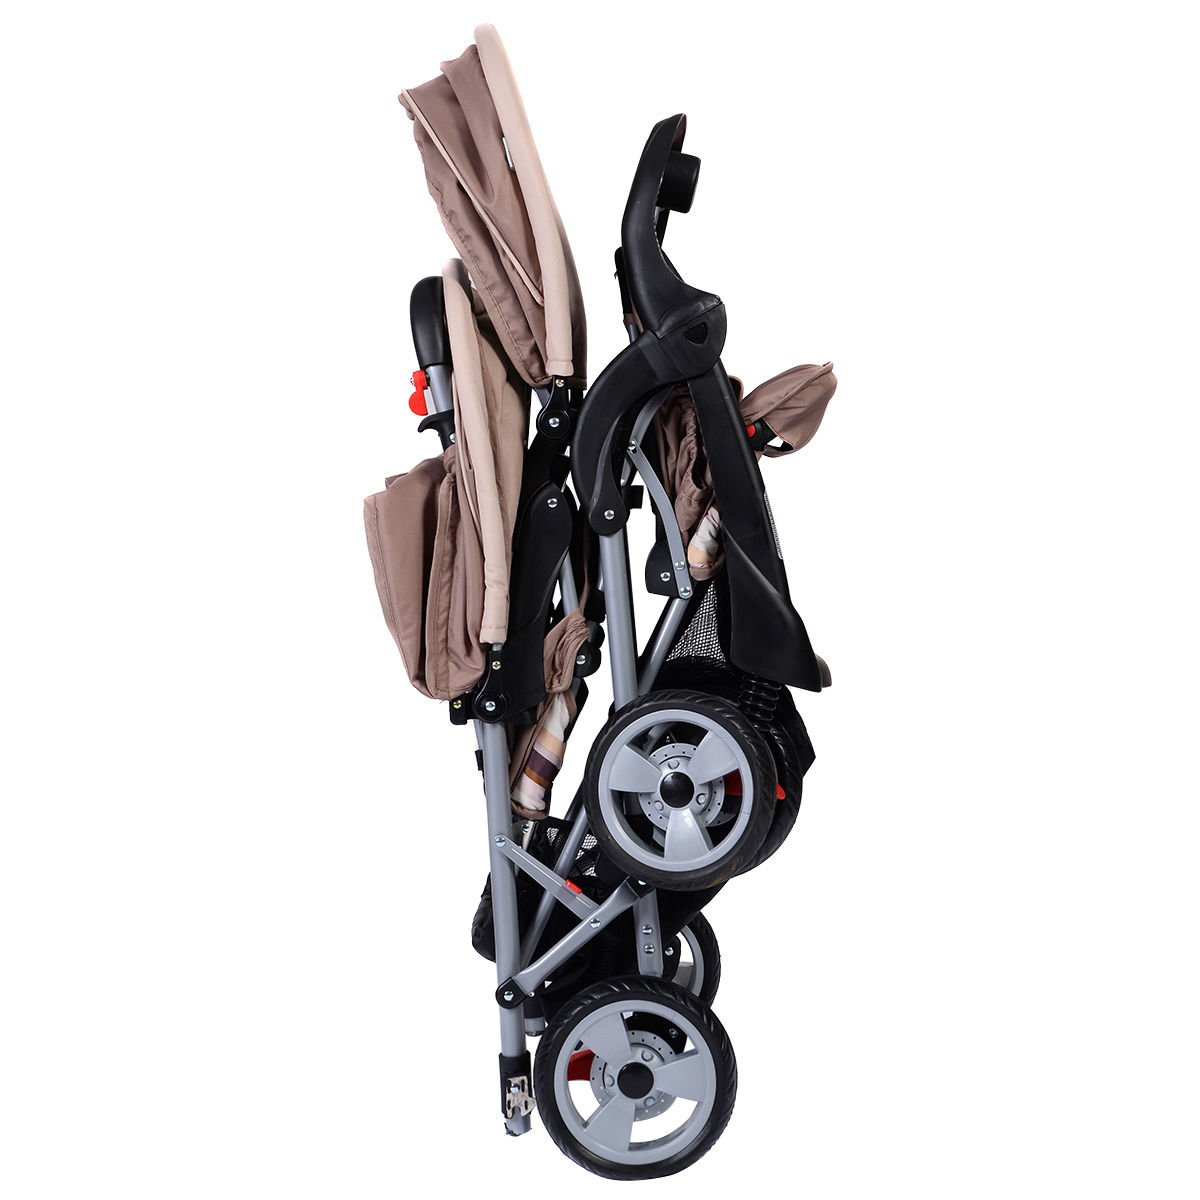 Foldable Twin Baby Double Stroller Kids Jogger Travel Infant Pushchair Gray by Apontus (Image #3)